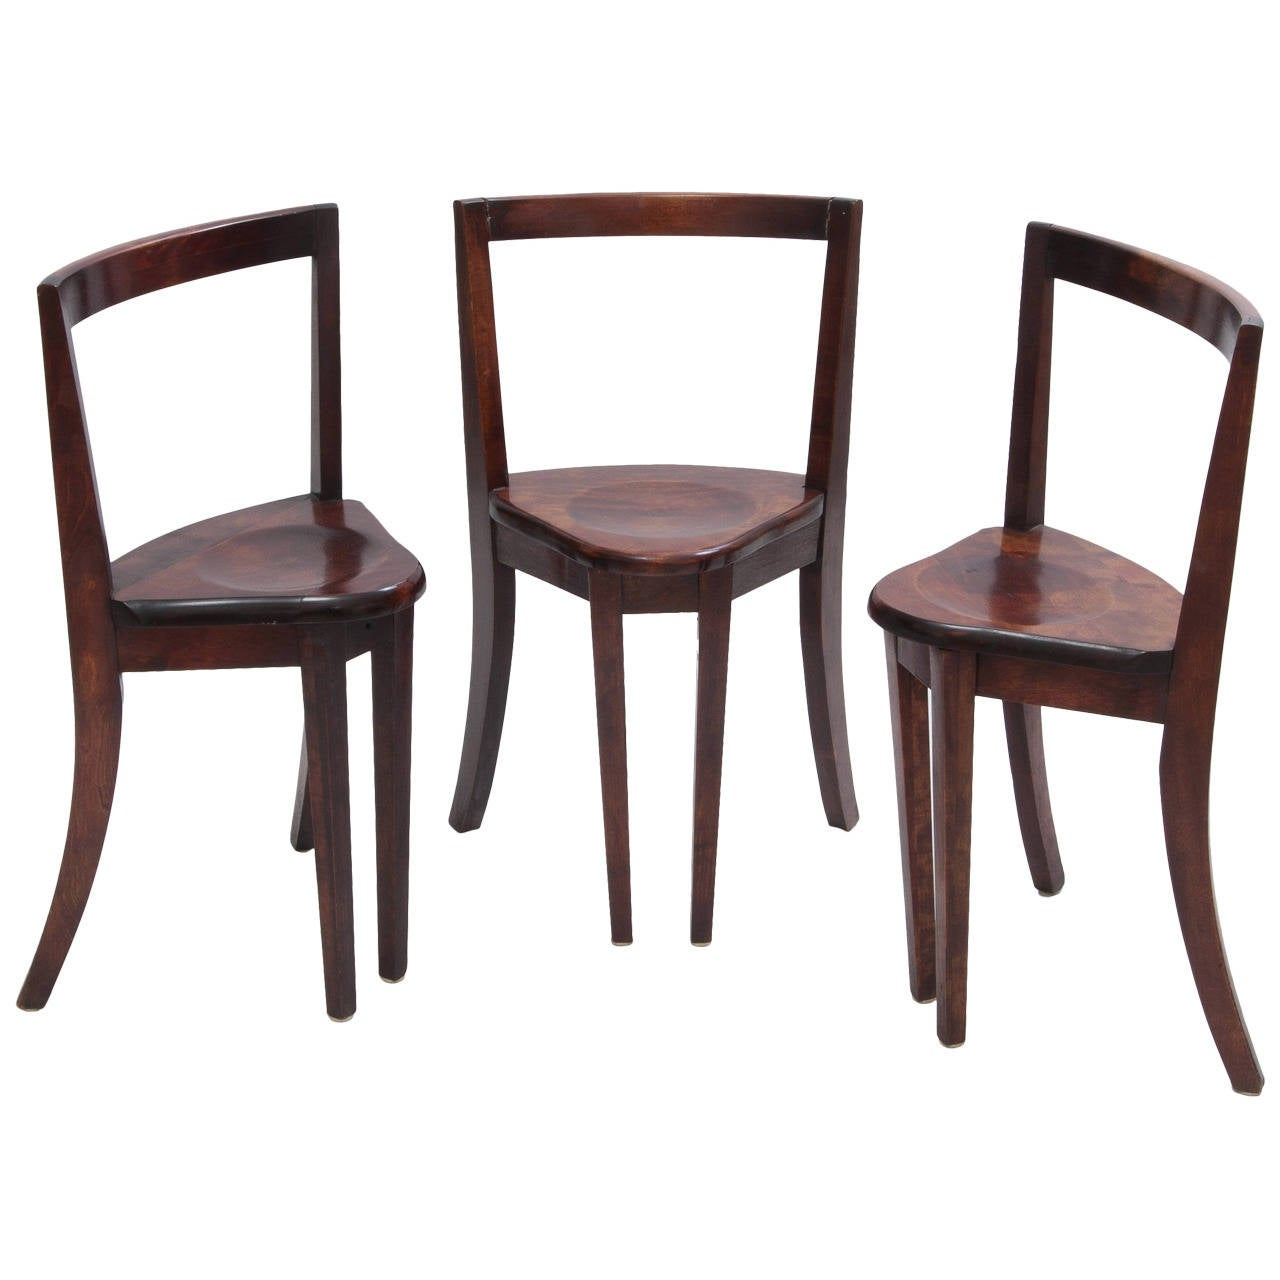 Shaped Chairs: Set Of Three Antique Triangular-Shaped Wood Chairs At 1stdibs